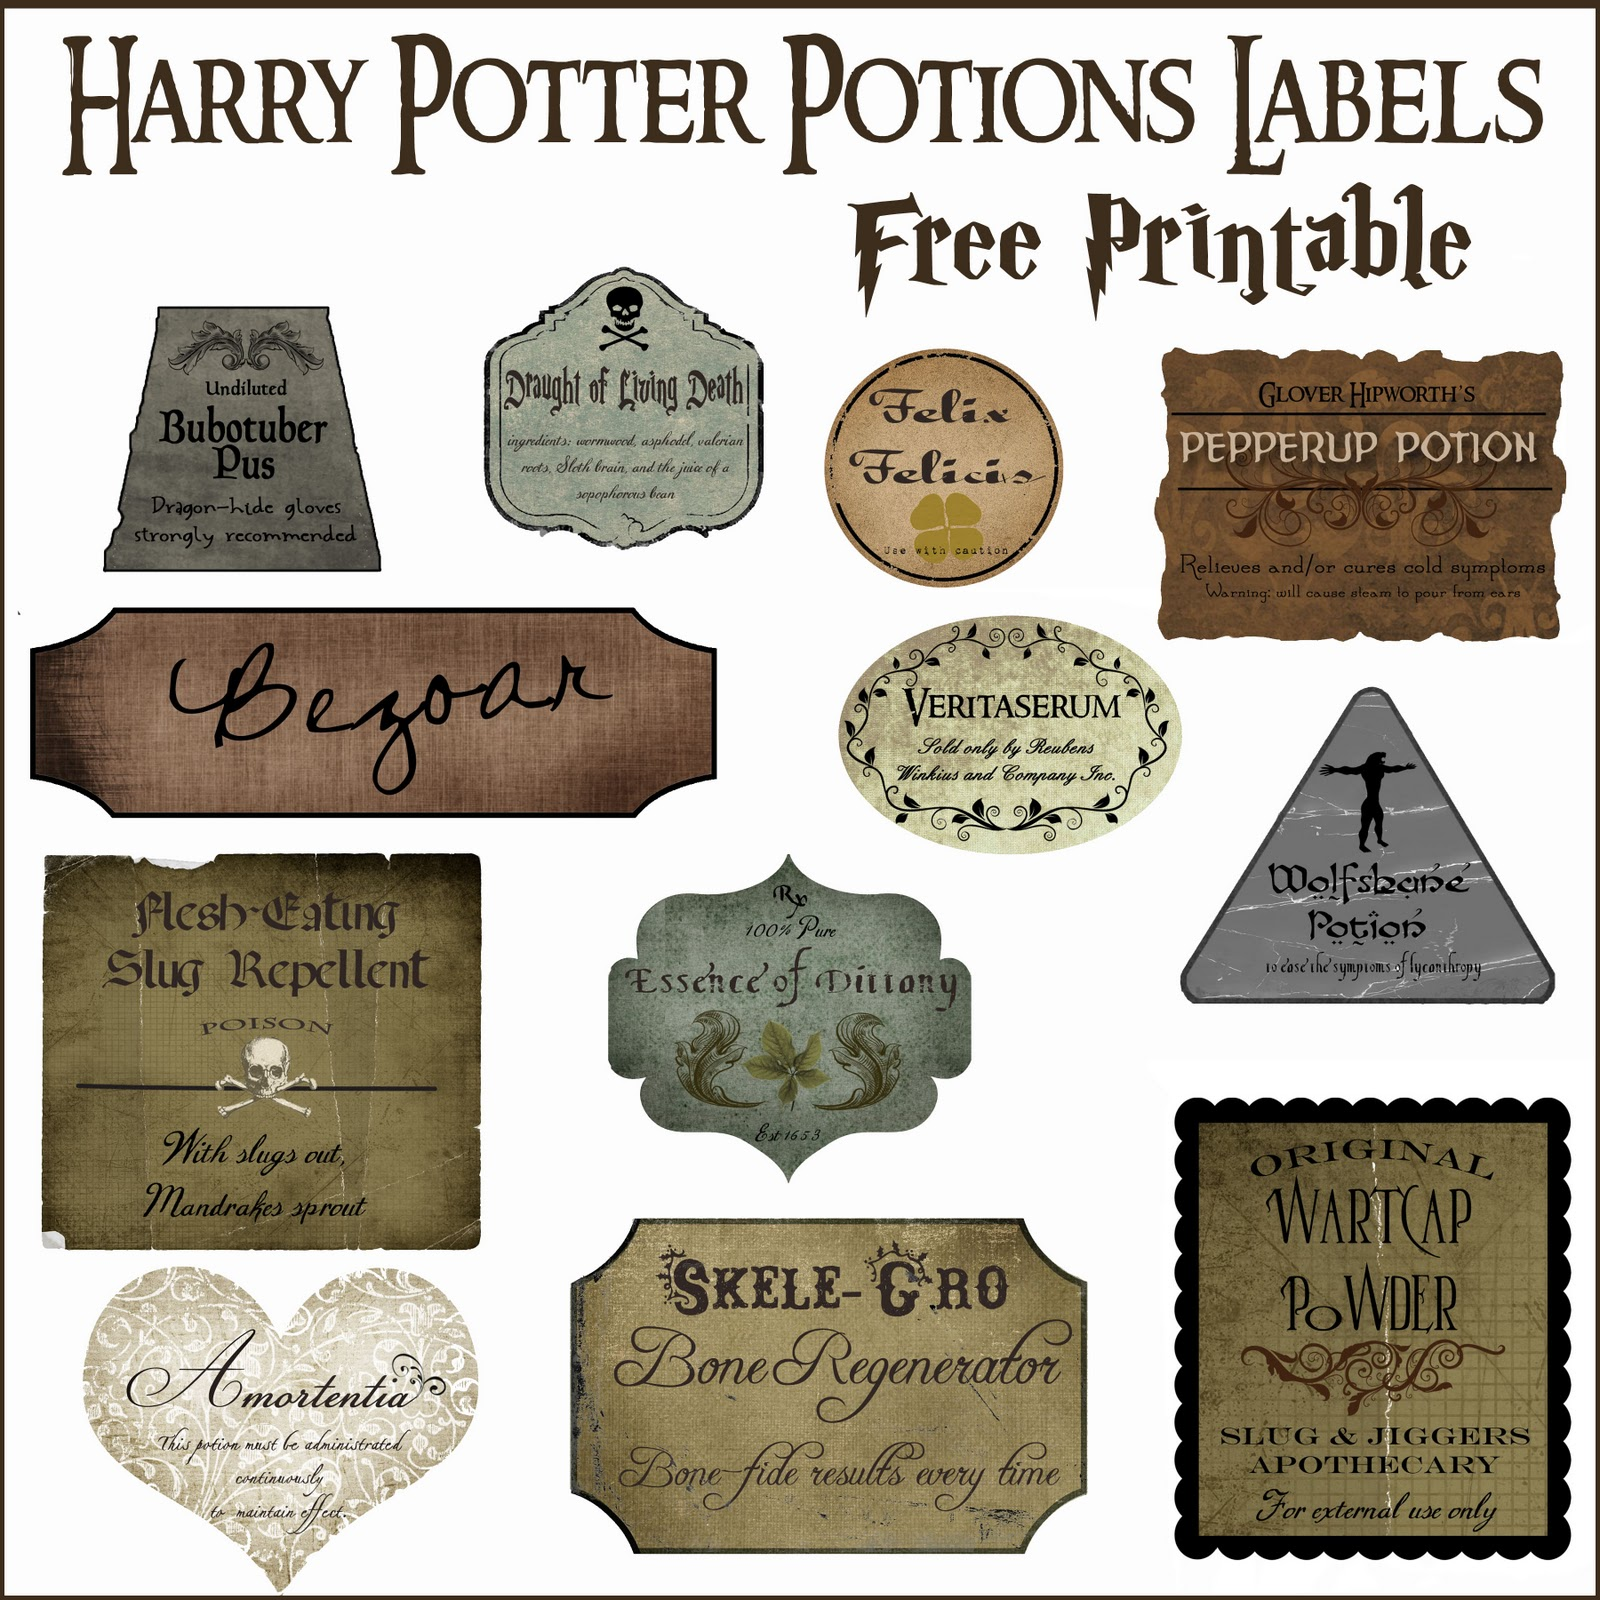 Harry Potter Potion Label Printables